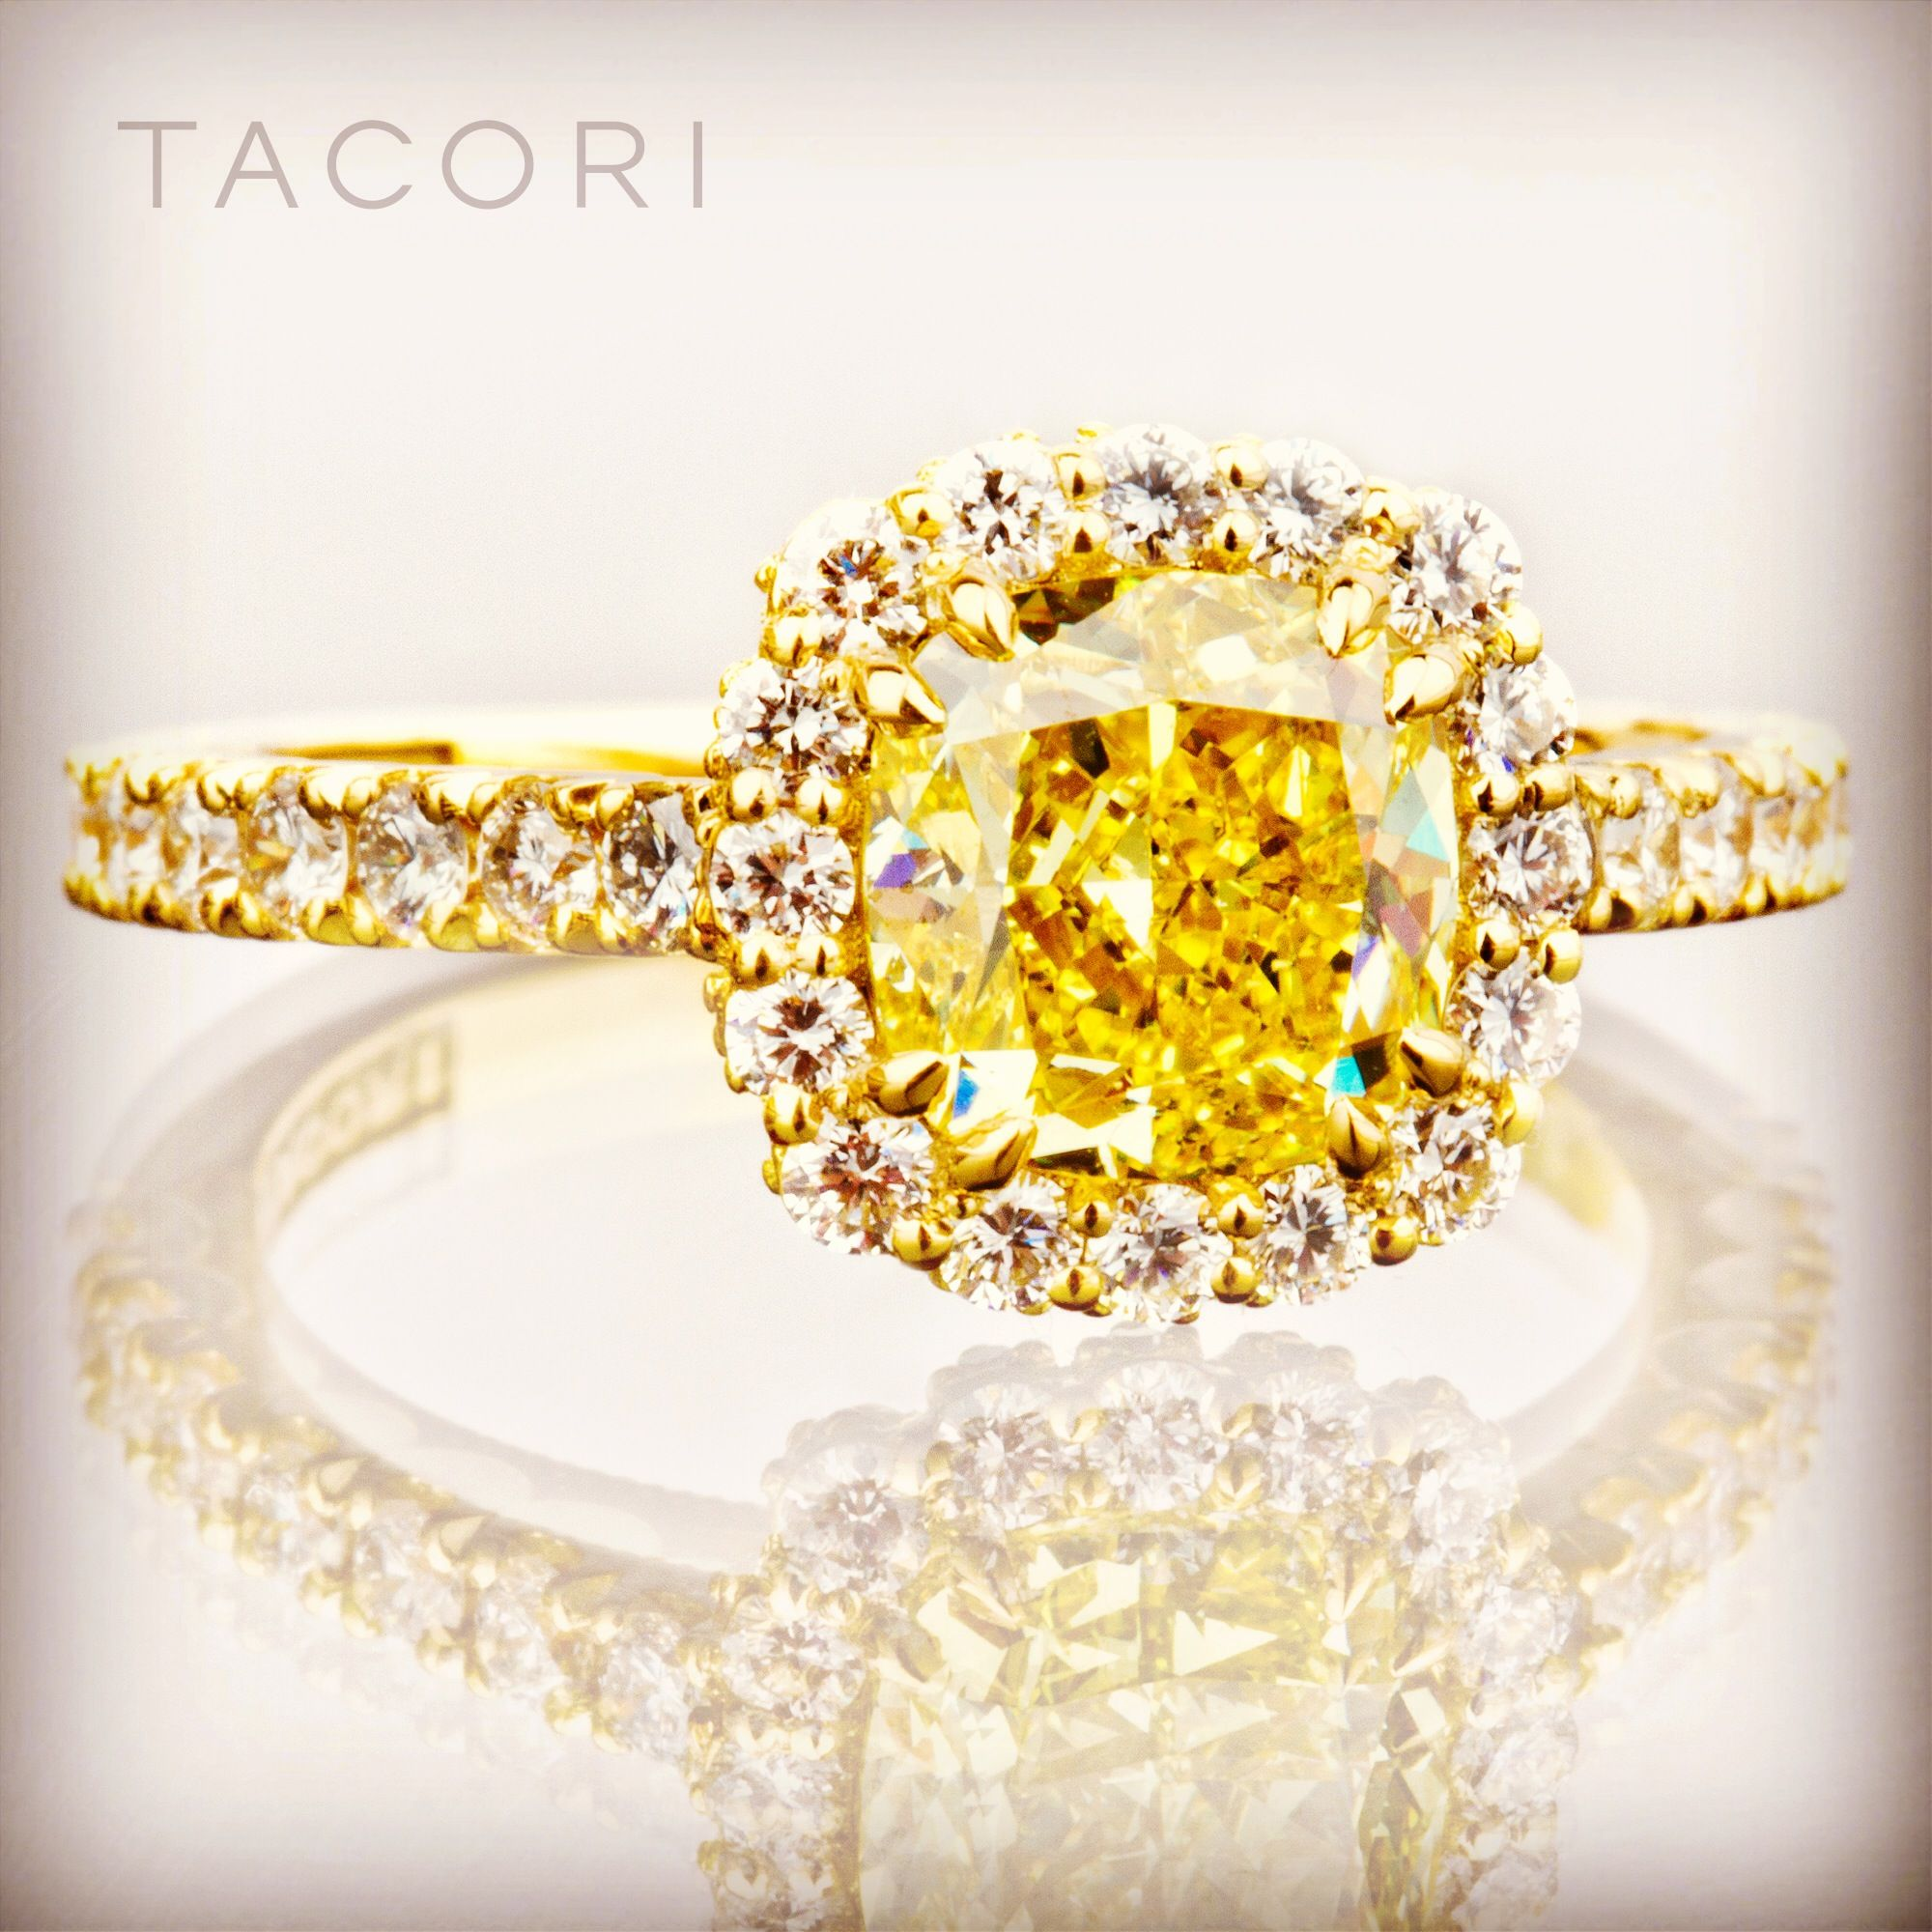 This Ray of Sunshine brightens every day Tacori engagement ring